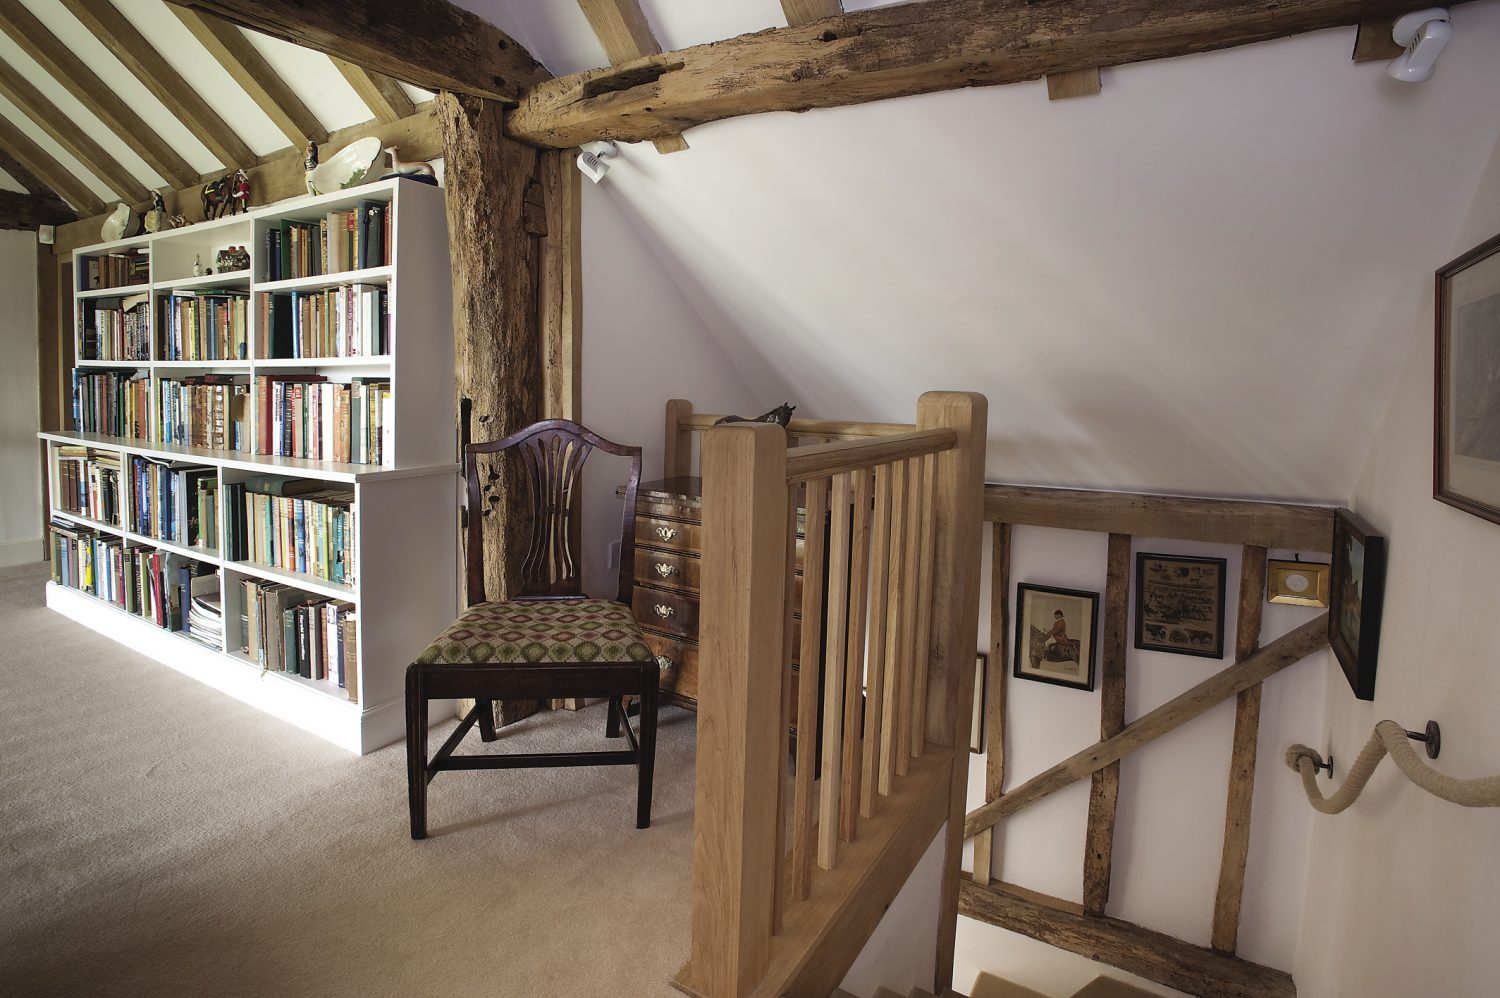 bookshelves made by Alpine Joinery of Frant stretch almost the length of the landing